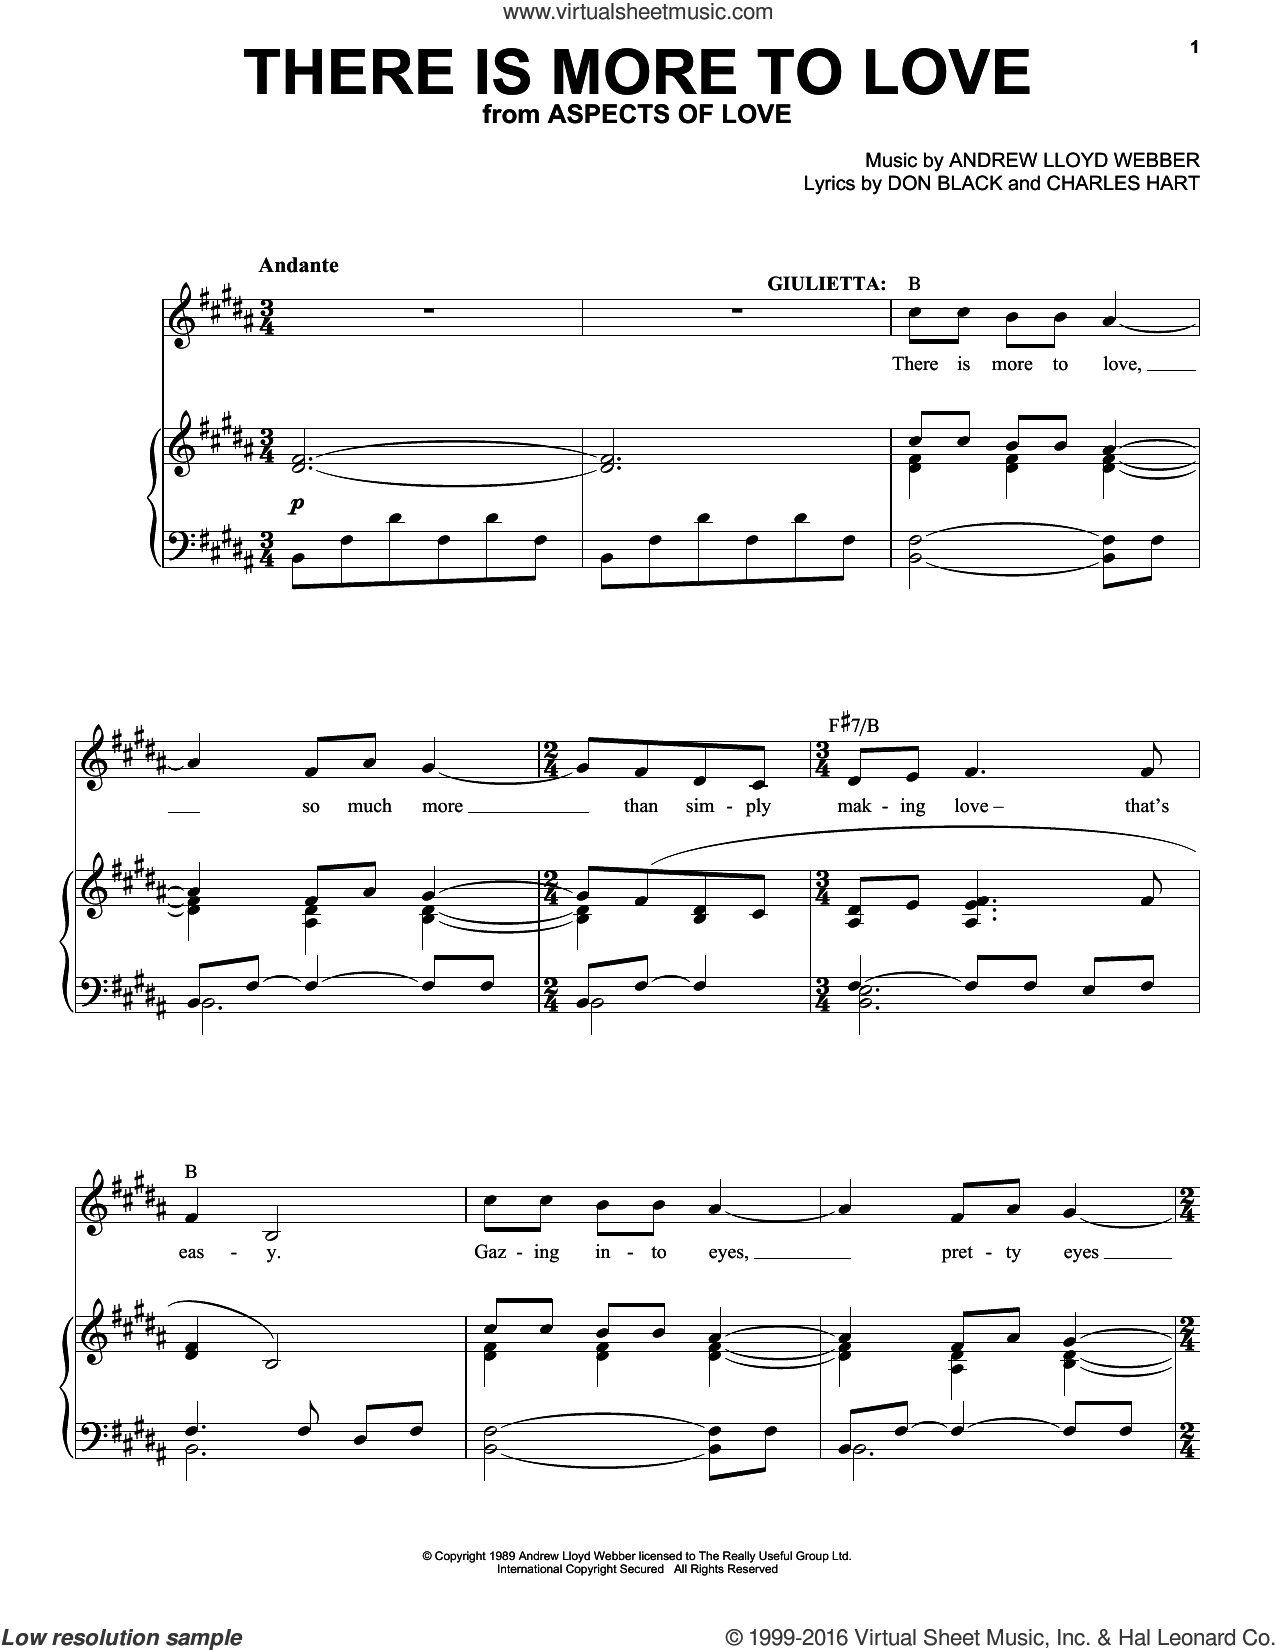 There Is More To Love sheet music for voice and piano by Don Black